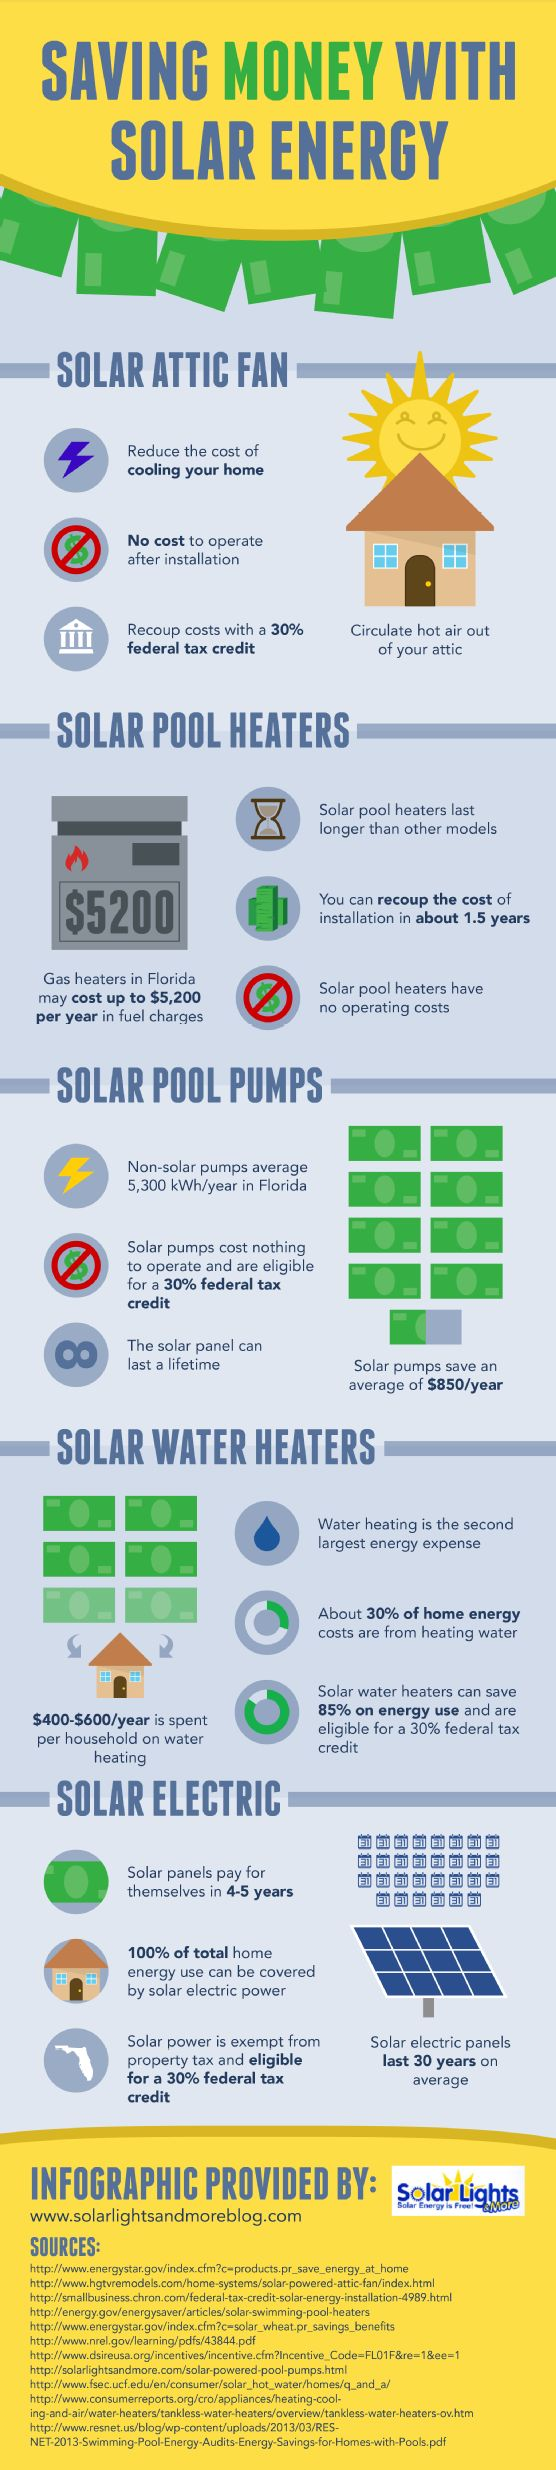 Solar pool heaters actually last longer than other models and have no operating costs! Check out this infographic from a solar energy company in Florida to learn about solar electric power and how it can benefit a home or business.